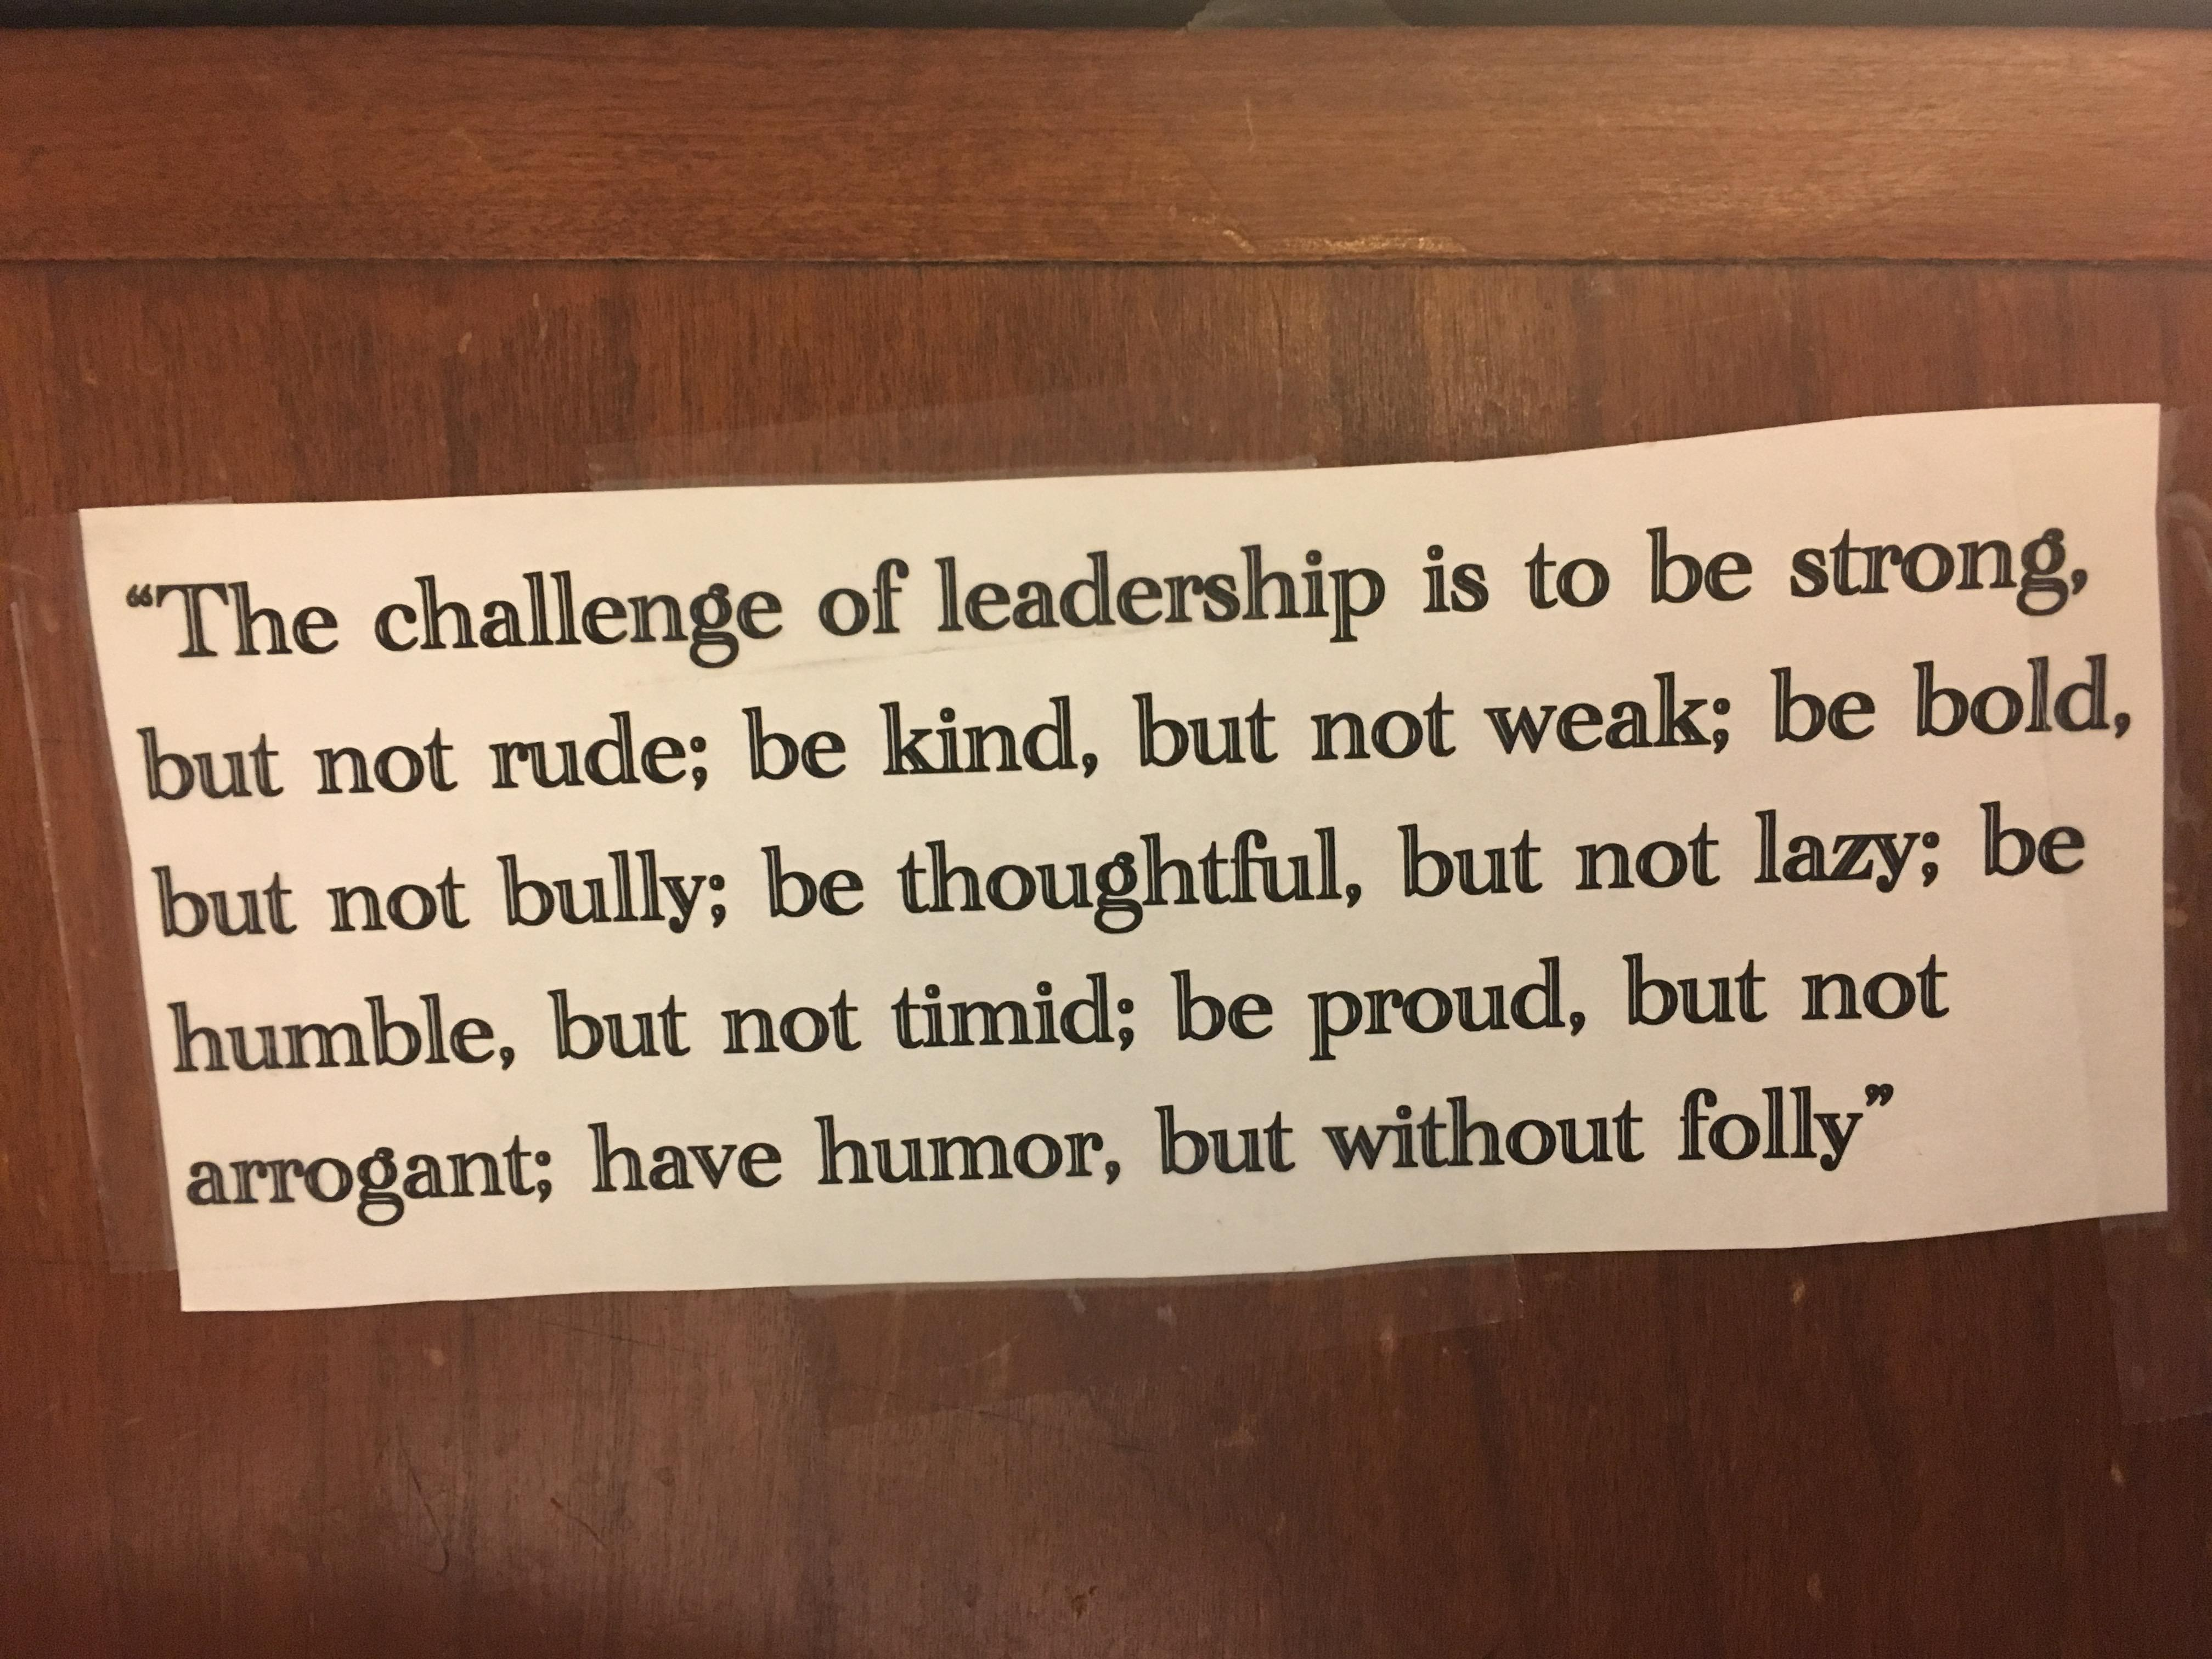 [Image] As Seen Taped To An Executive's Desk